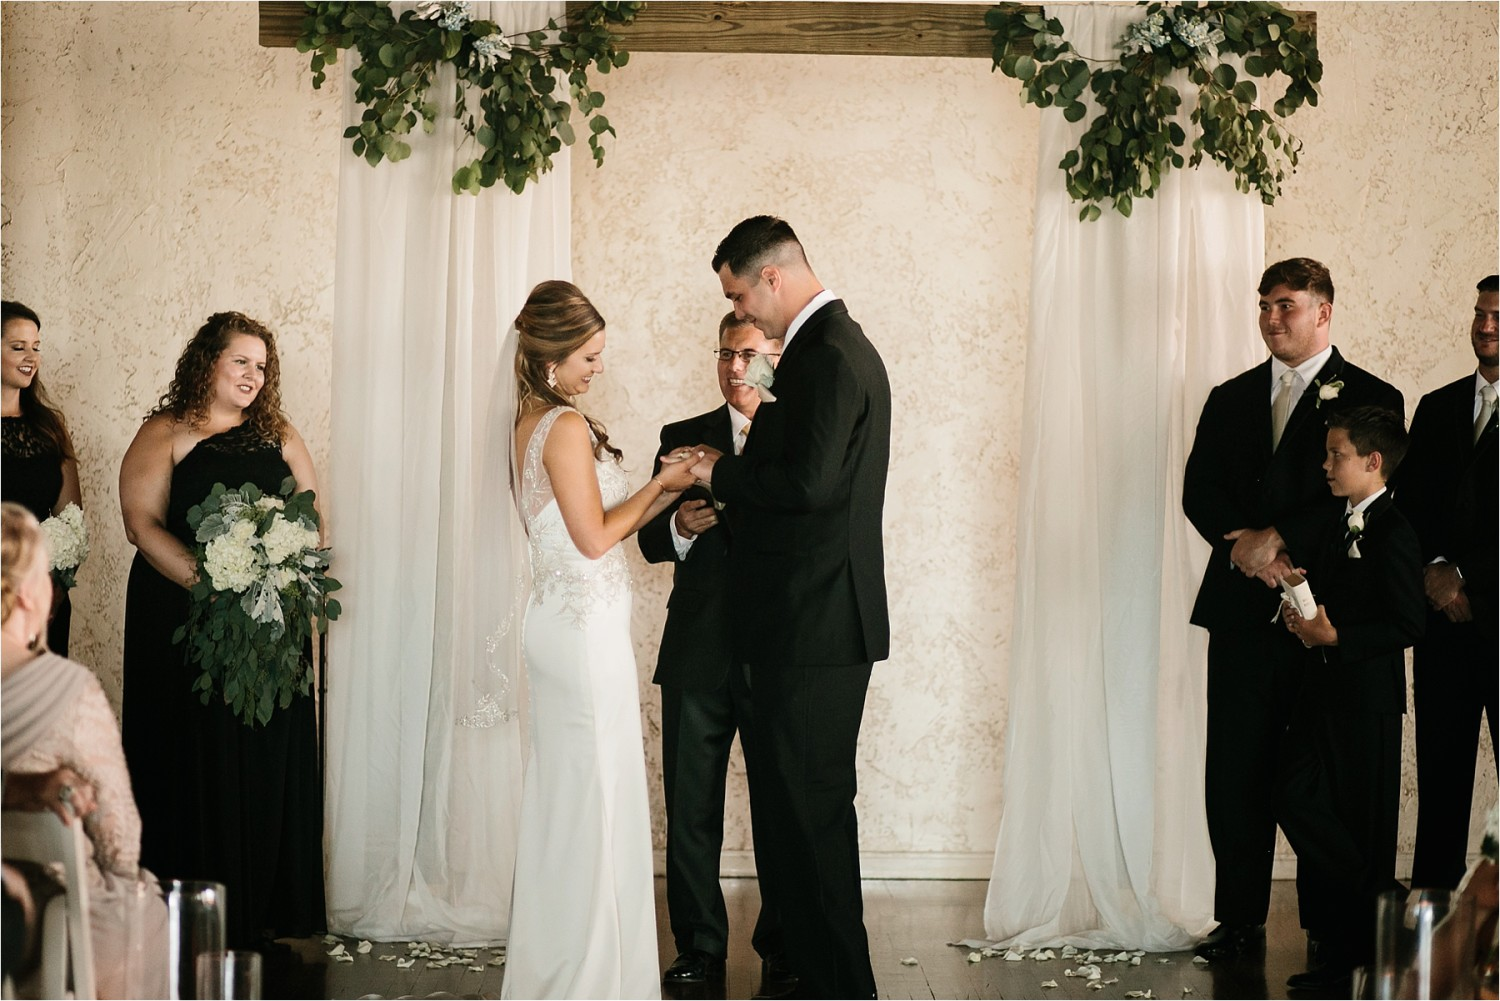 Holly + Jordan __ a black, gold, and greenery organic wedding at The Phoenix Ballroom in Waco, TX by North Texas Wedding Photographer Rachel Meagan Photography __ 63